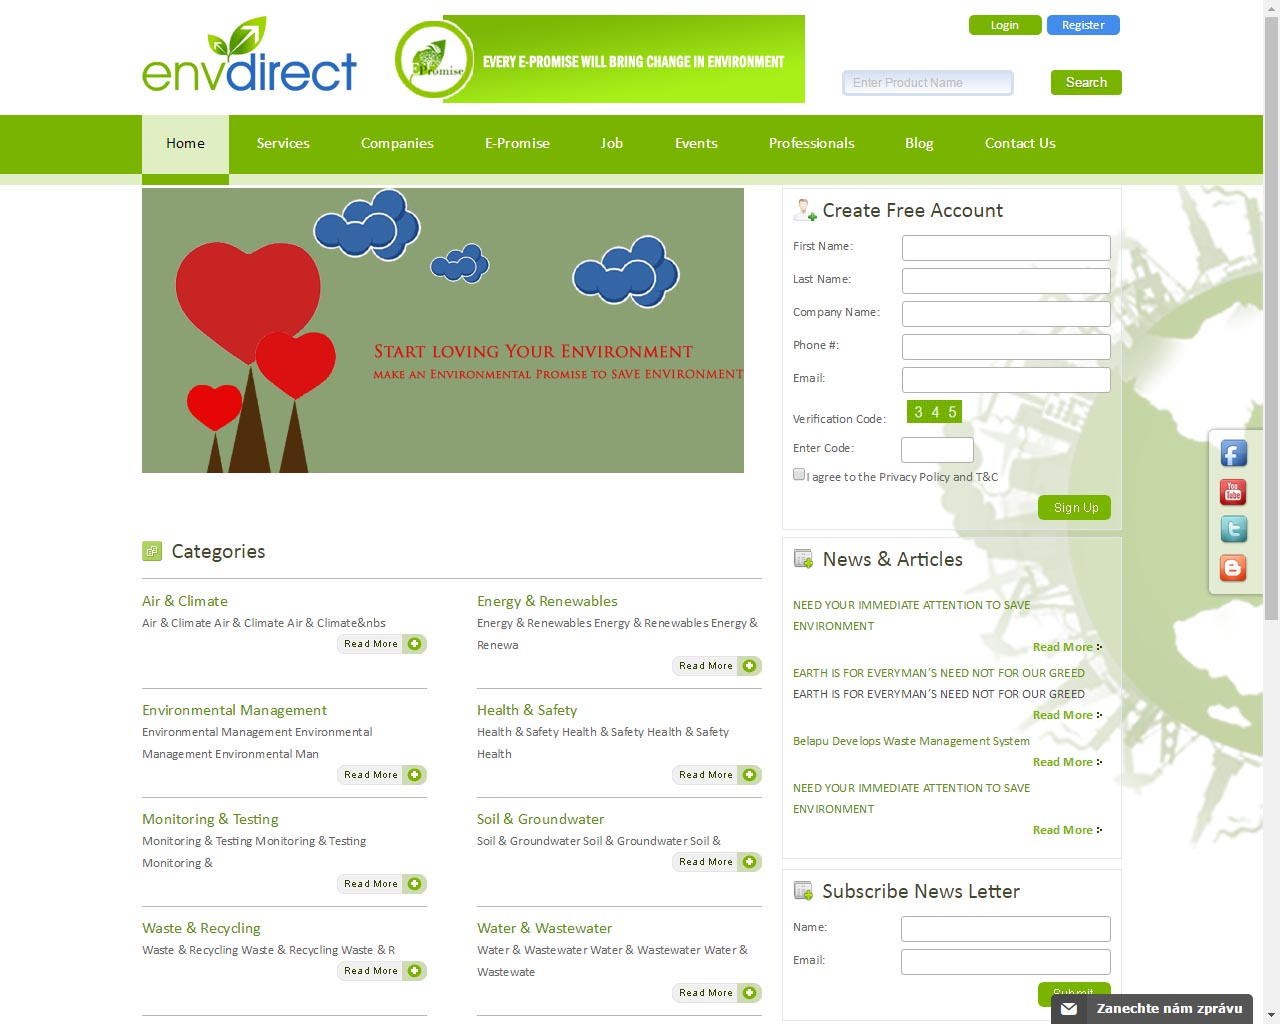 env drirect